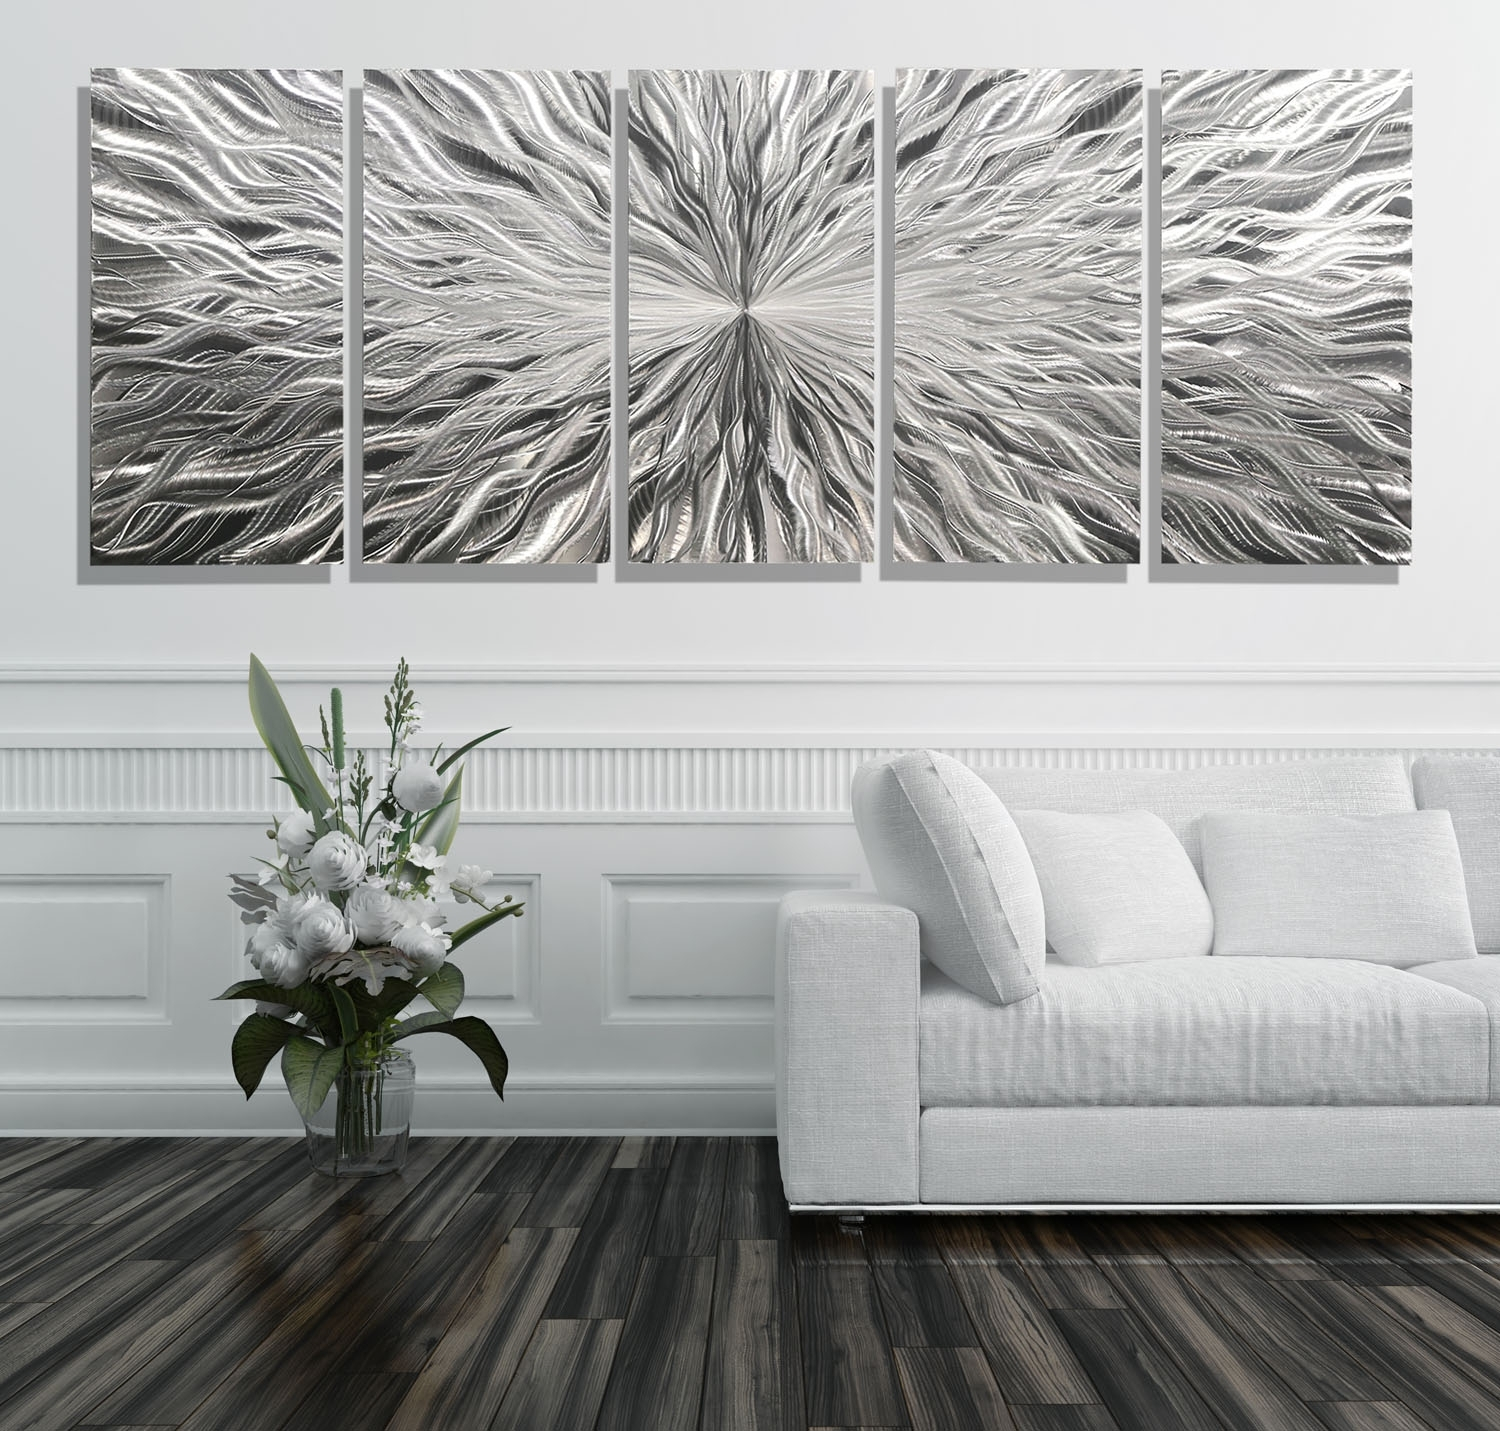 Vortex 5 Xl – Extra Large 5 Panel Modern Abstract Metal Wall Art For Most Current Extra Large Wall Art (View 18 of 20)